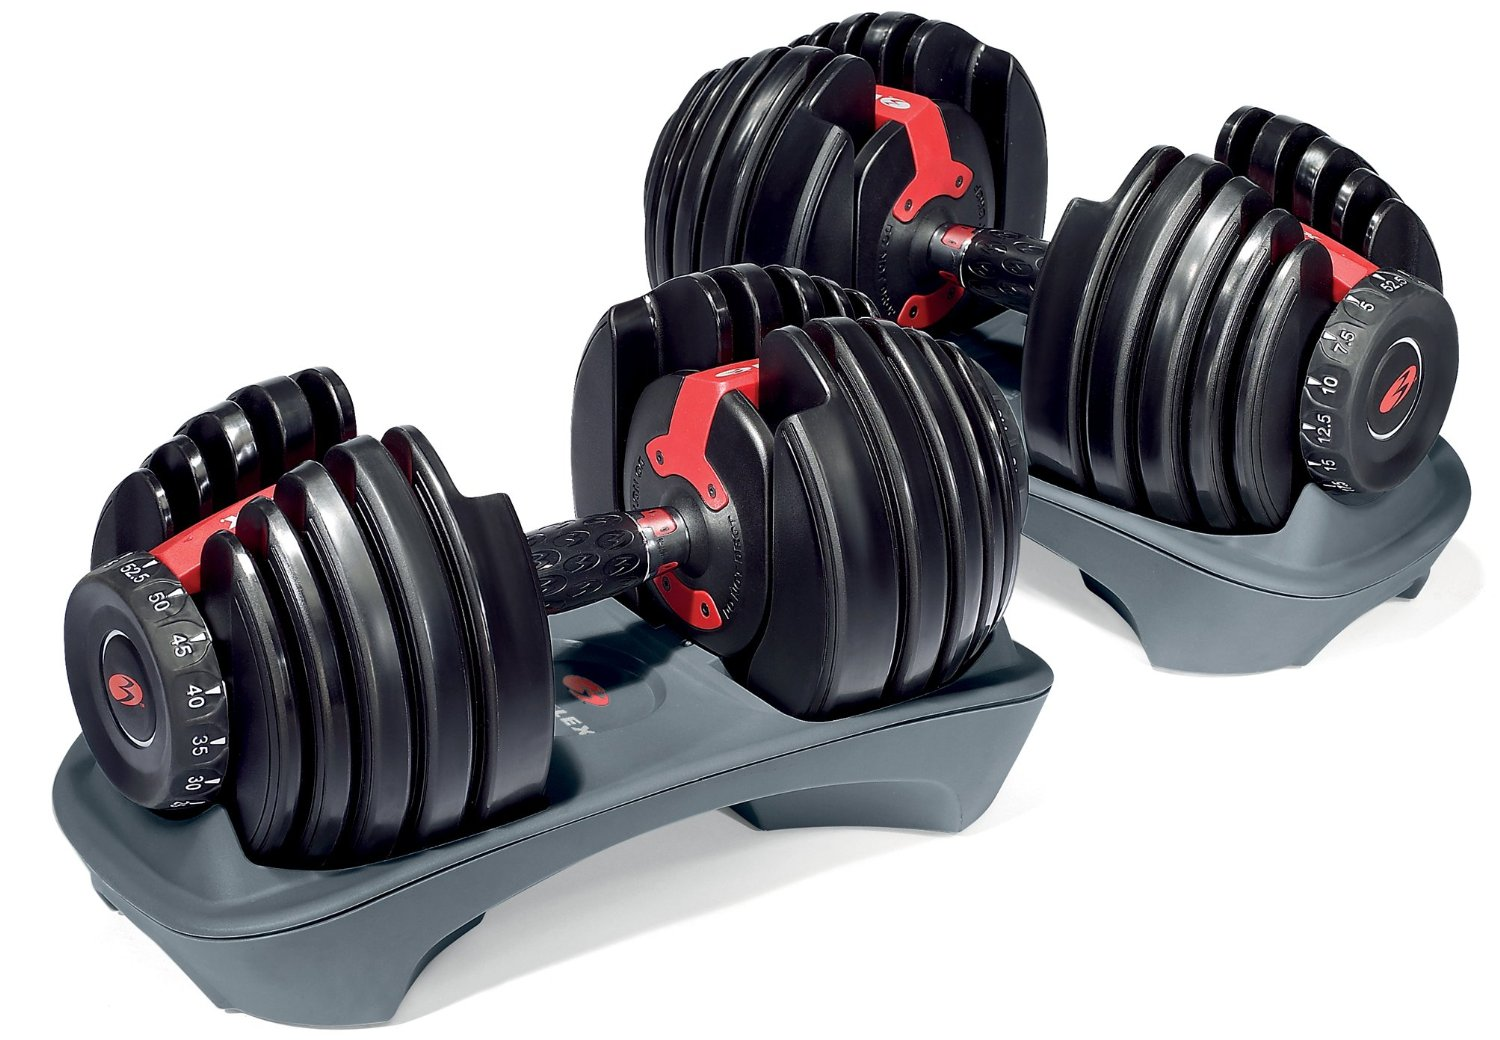 Bowflex SelectTech 552 Customizable Dumbbells - Dial System Eliminates Changing Weight Plates, 15 Weight Settings Adjust from 5 to 52.5 Pounds